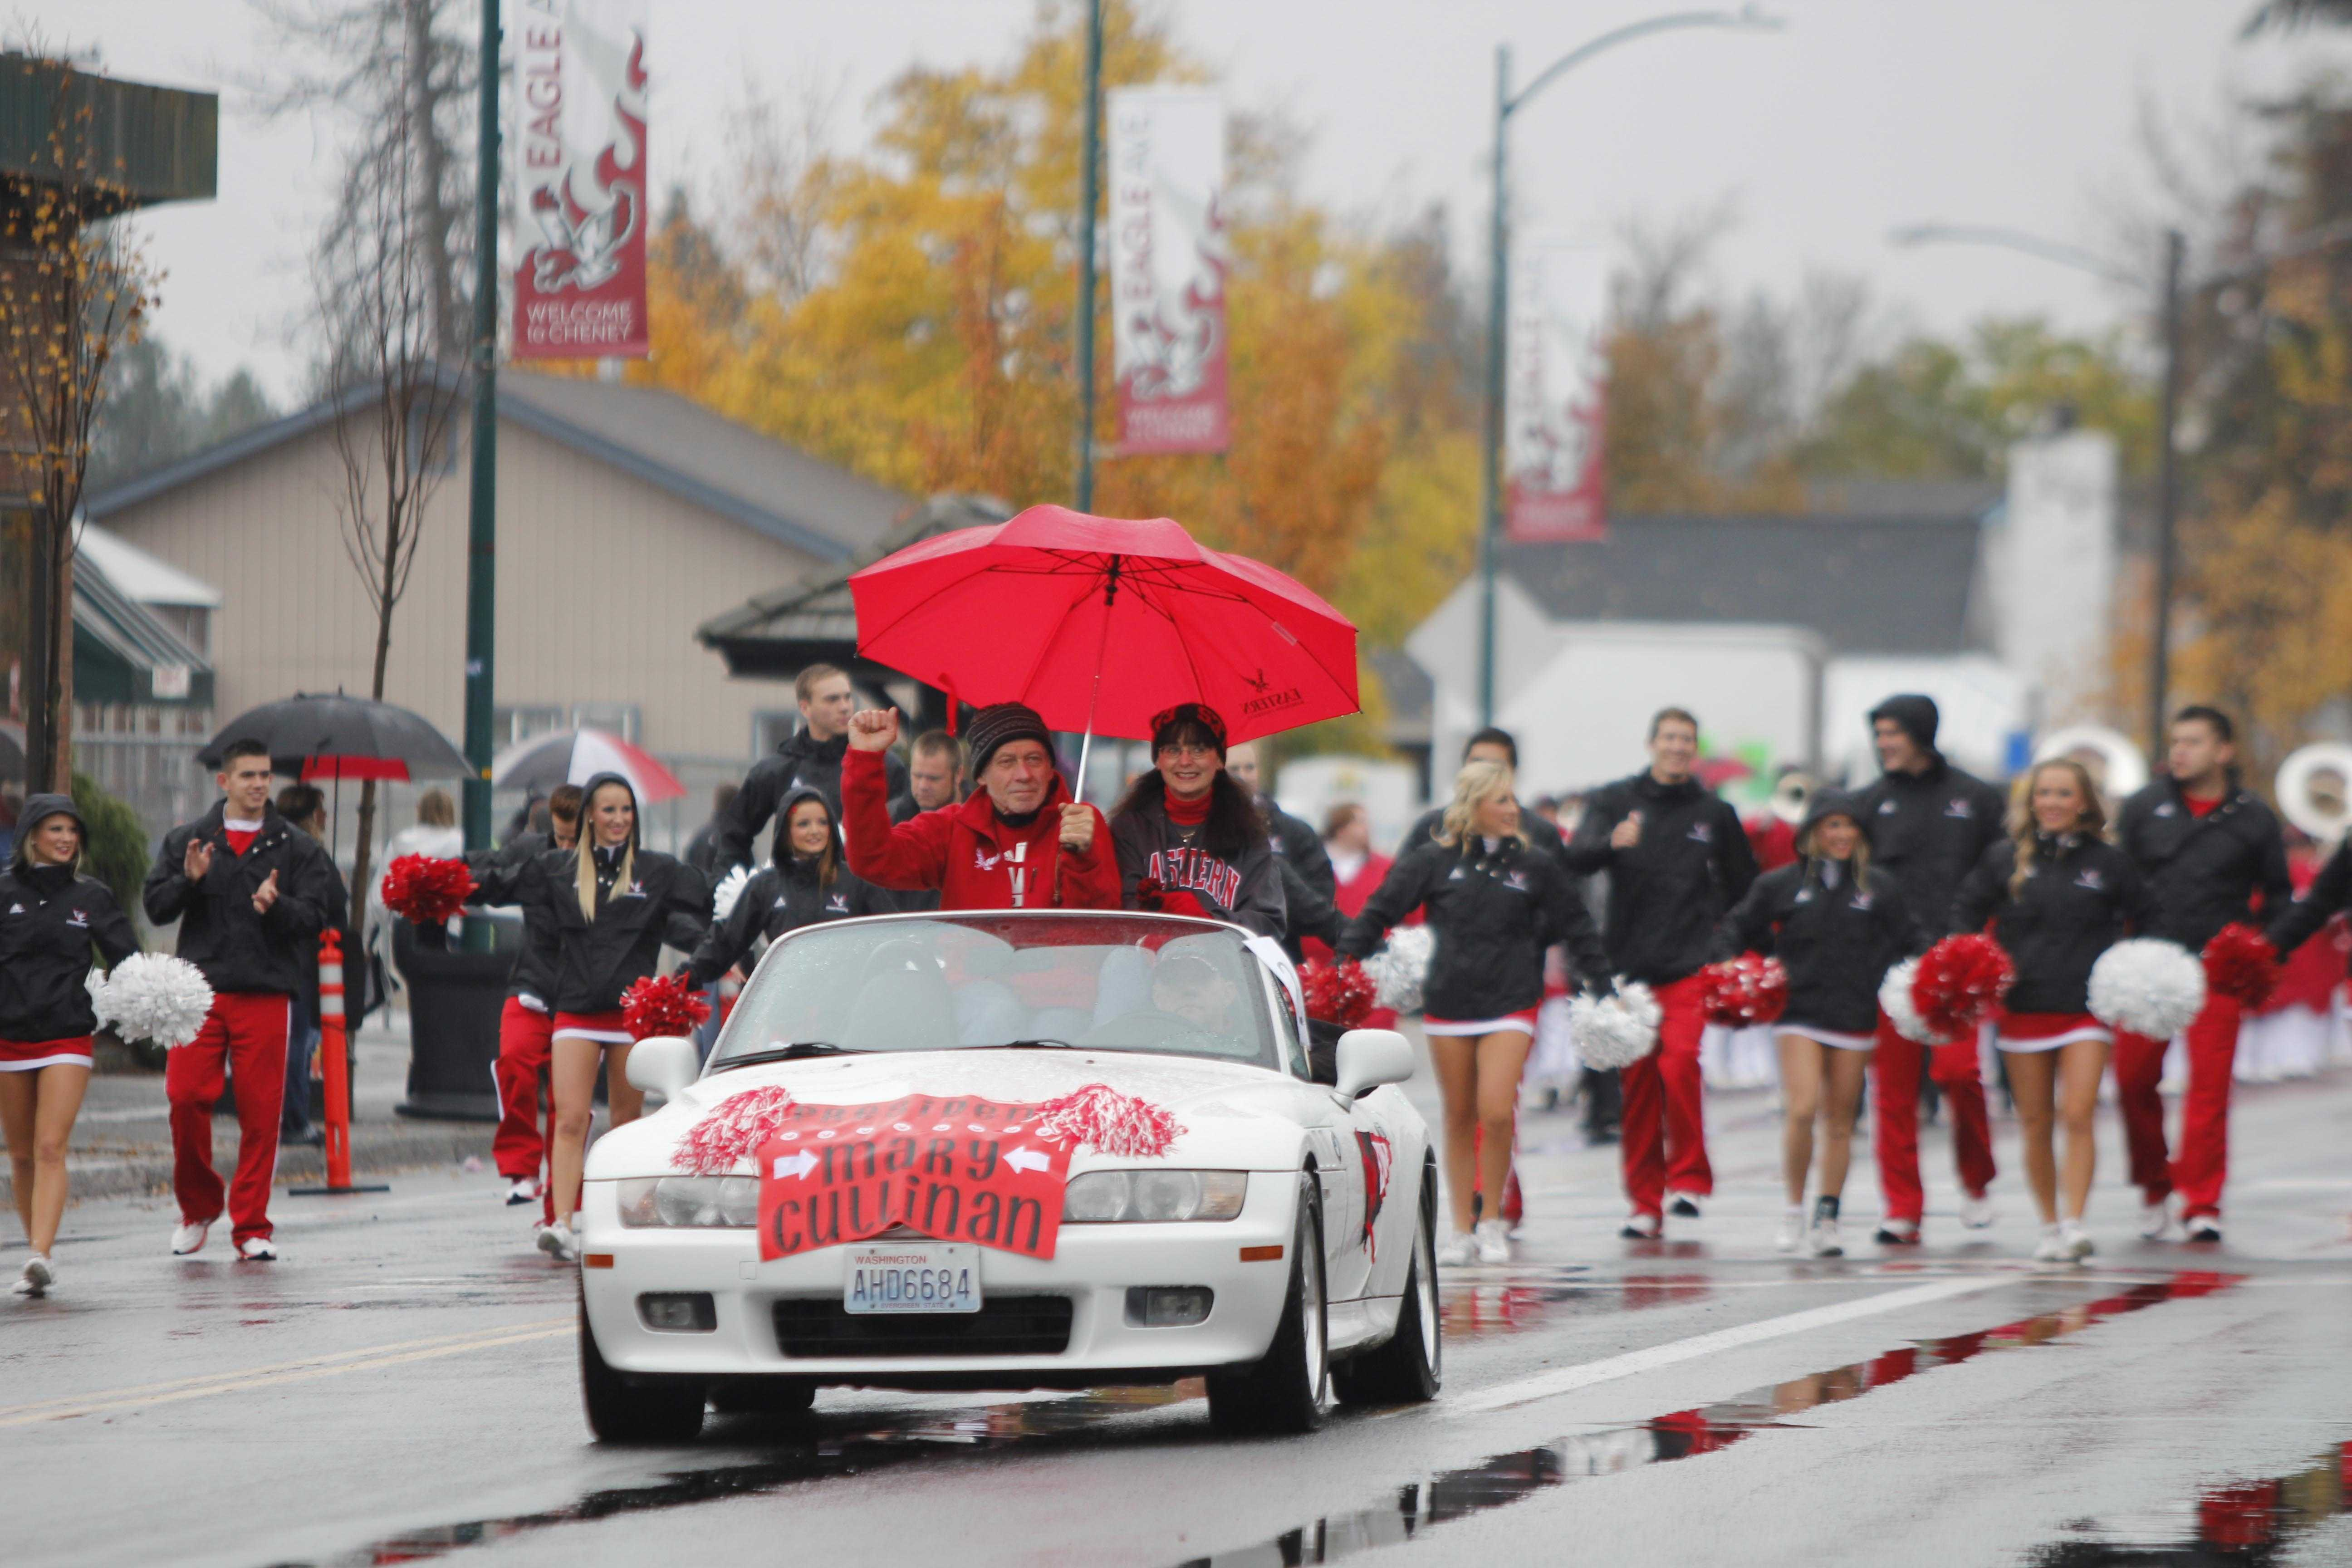 Eastern President Mary Cullinan shows her school spirit depute the rain as a part of the Homecoming Parade in downtown Cheney Nov. 1.